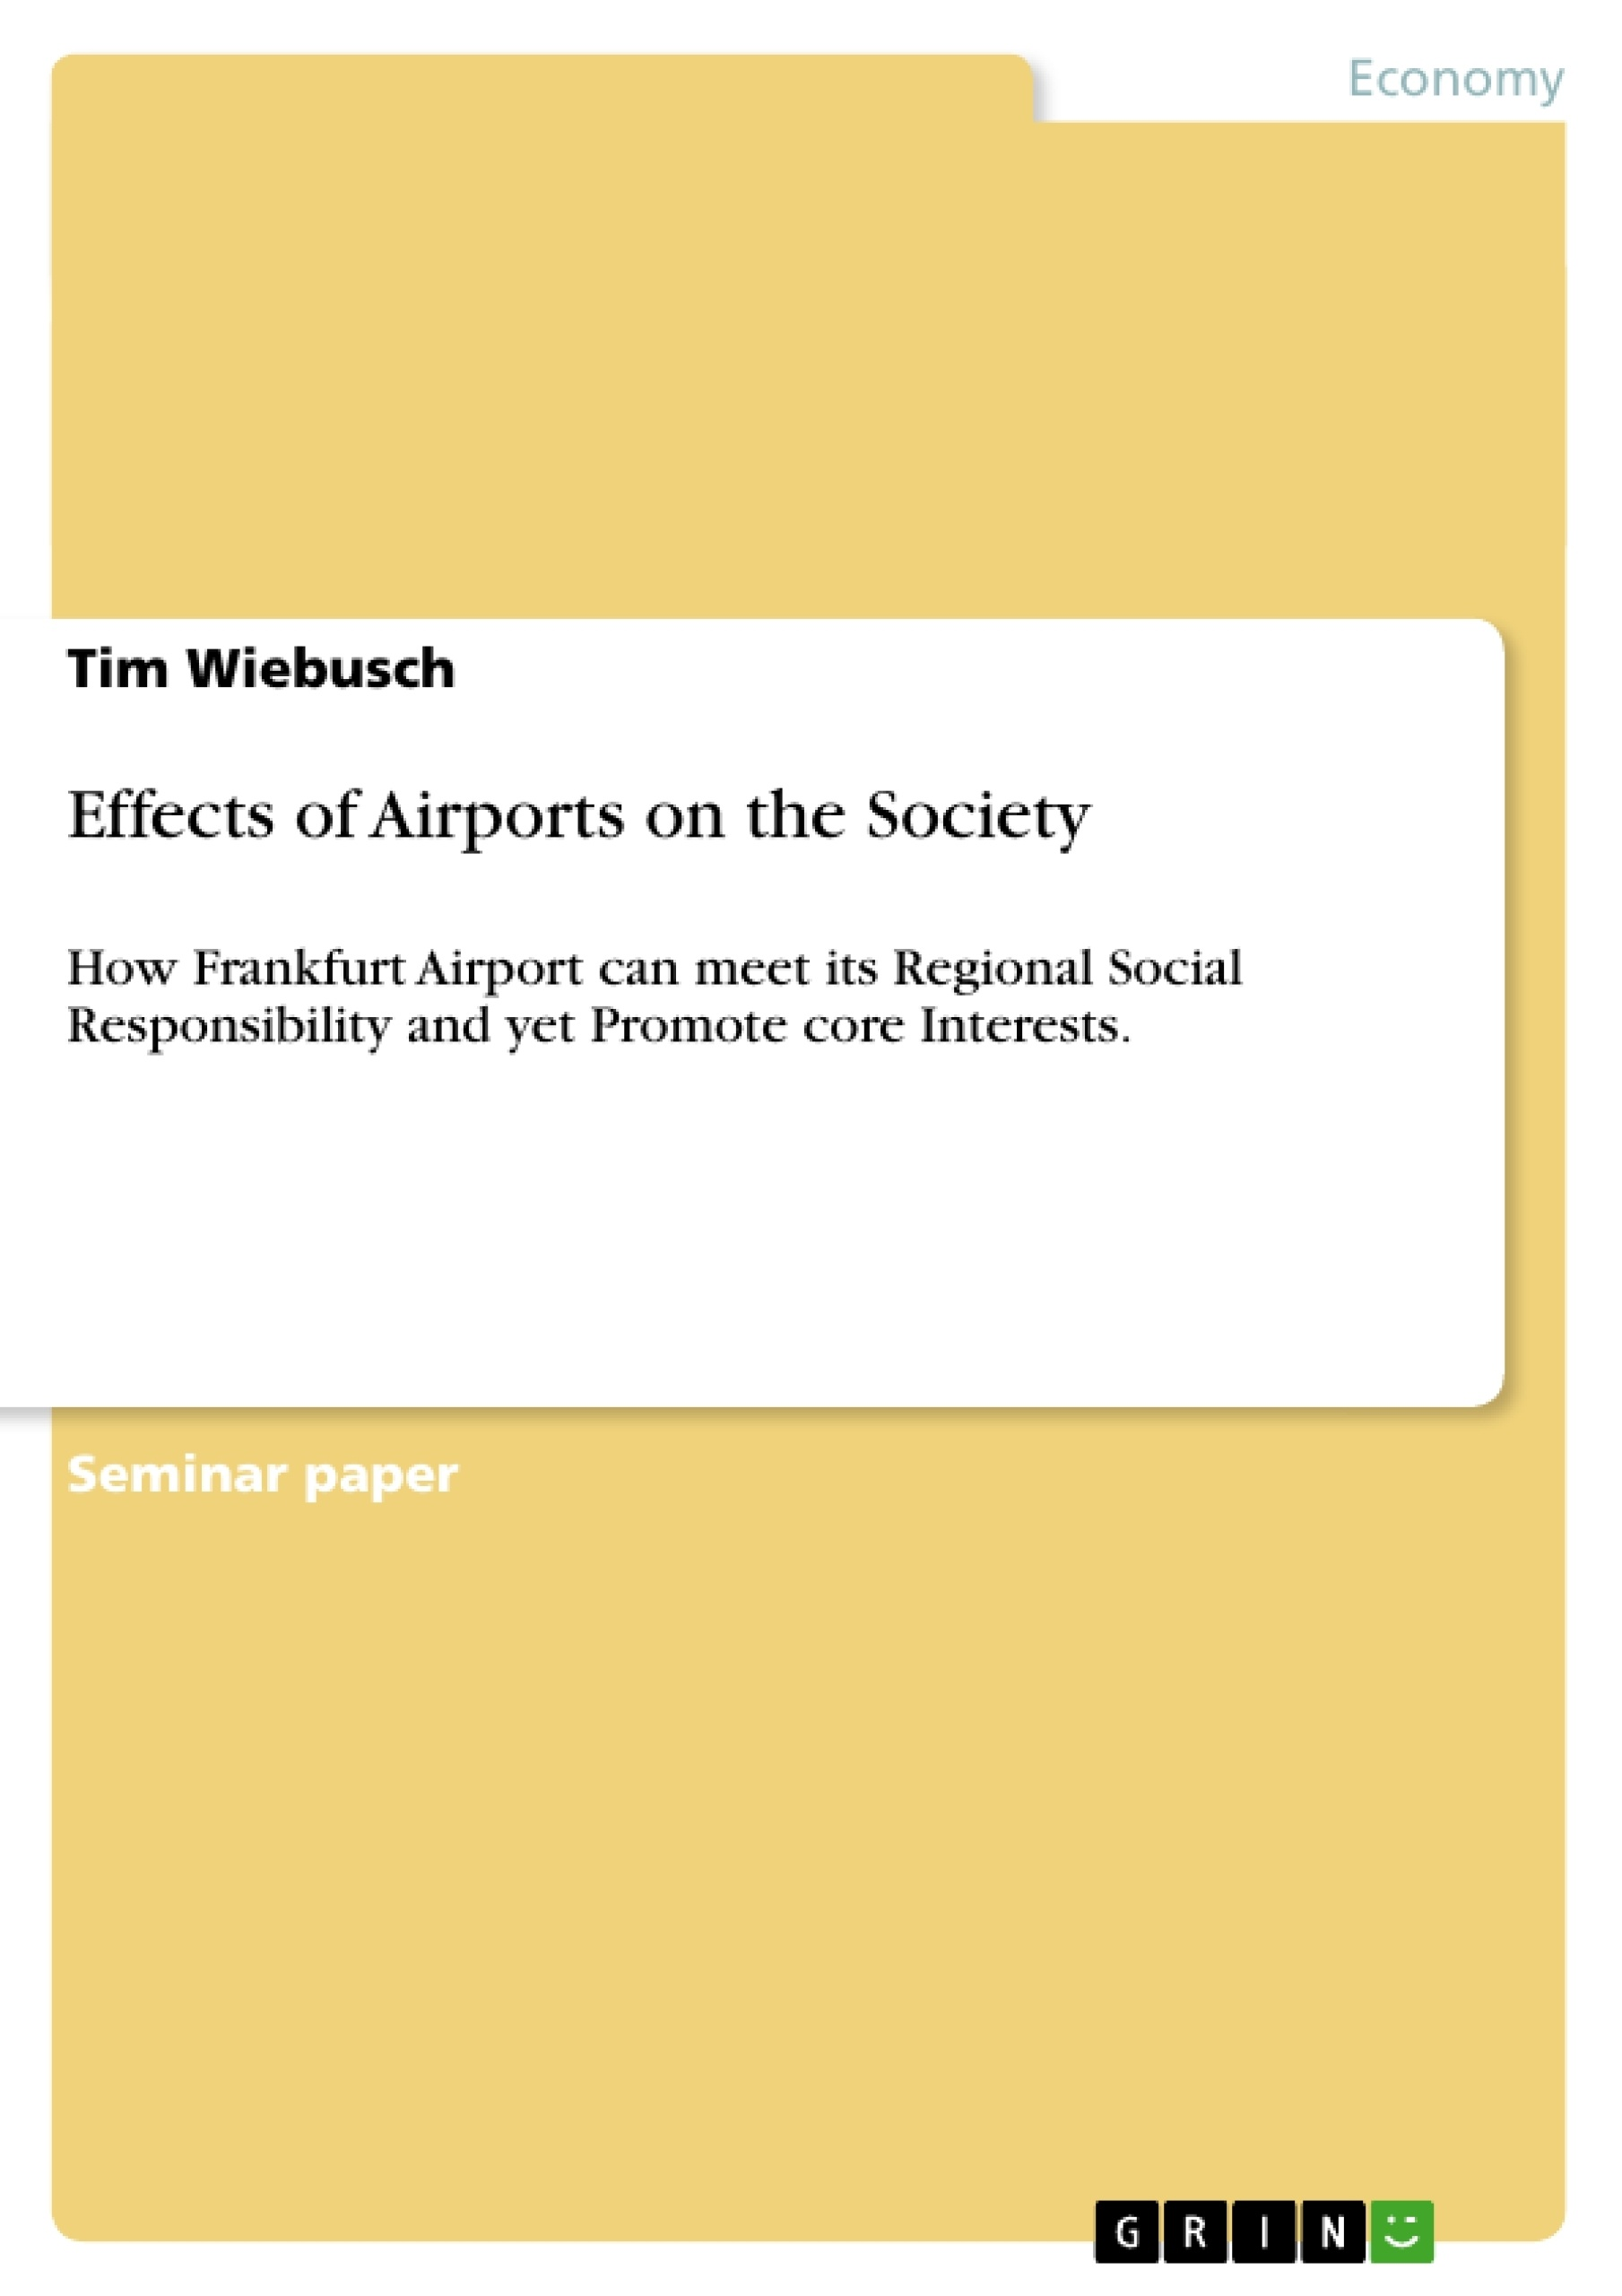 Title: Effects of Airports on the Society